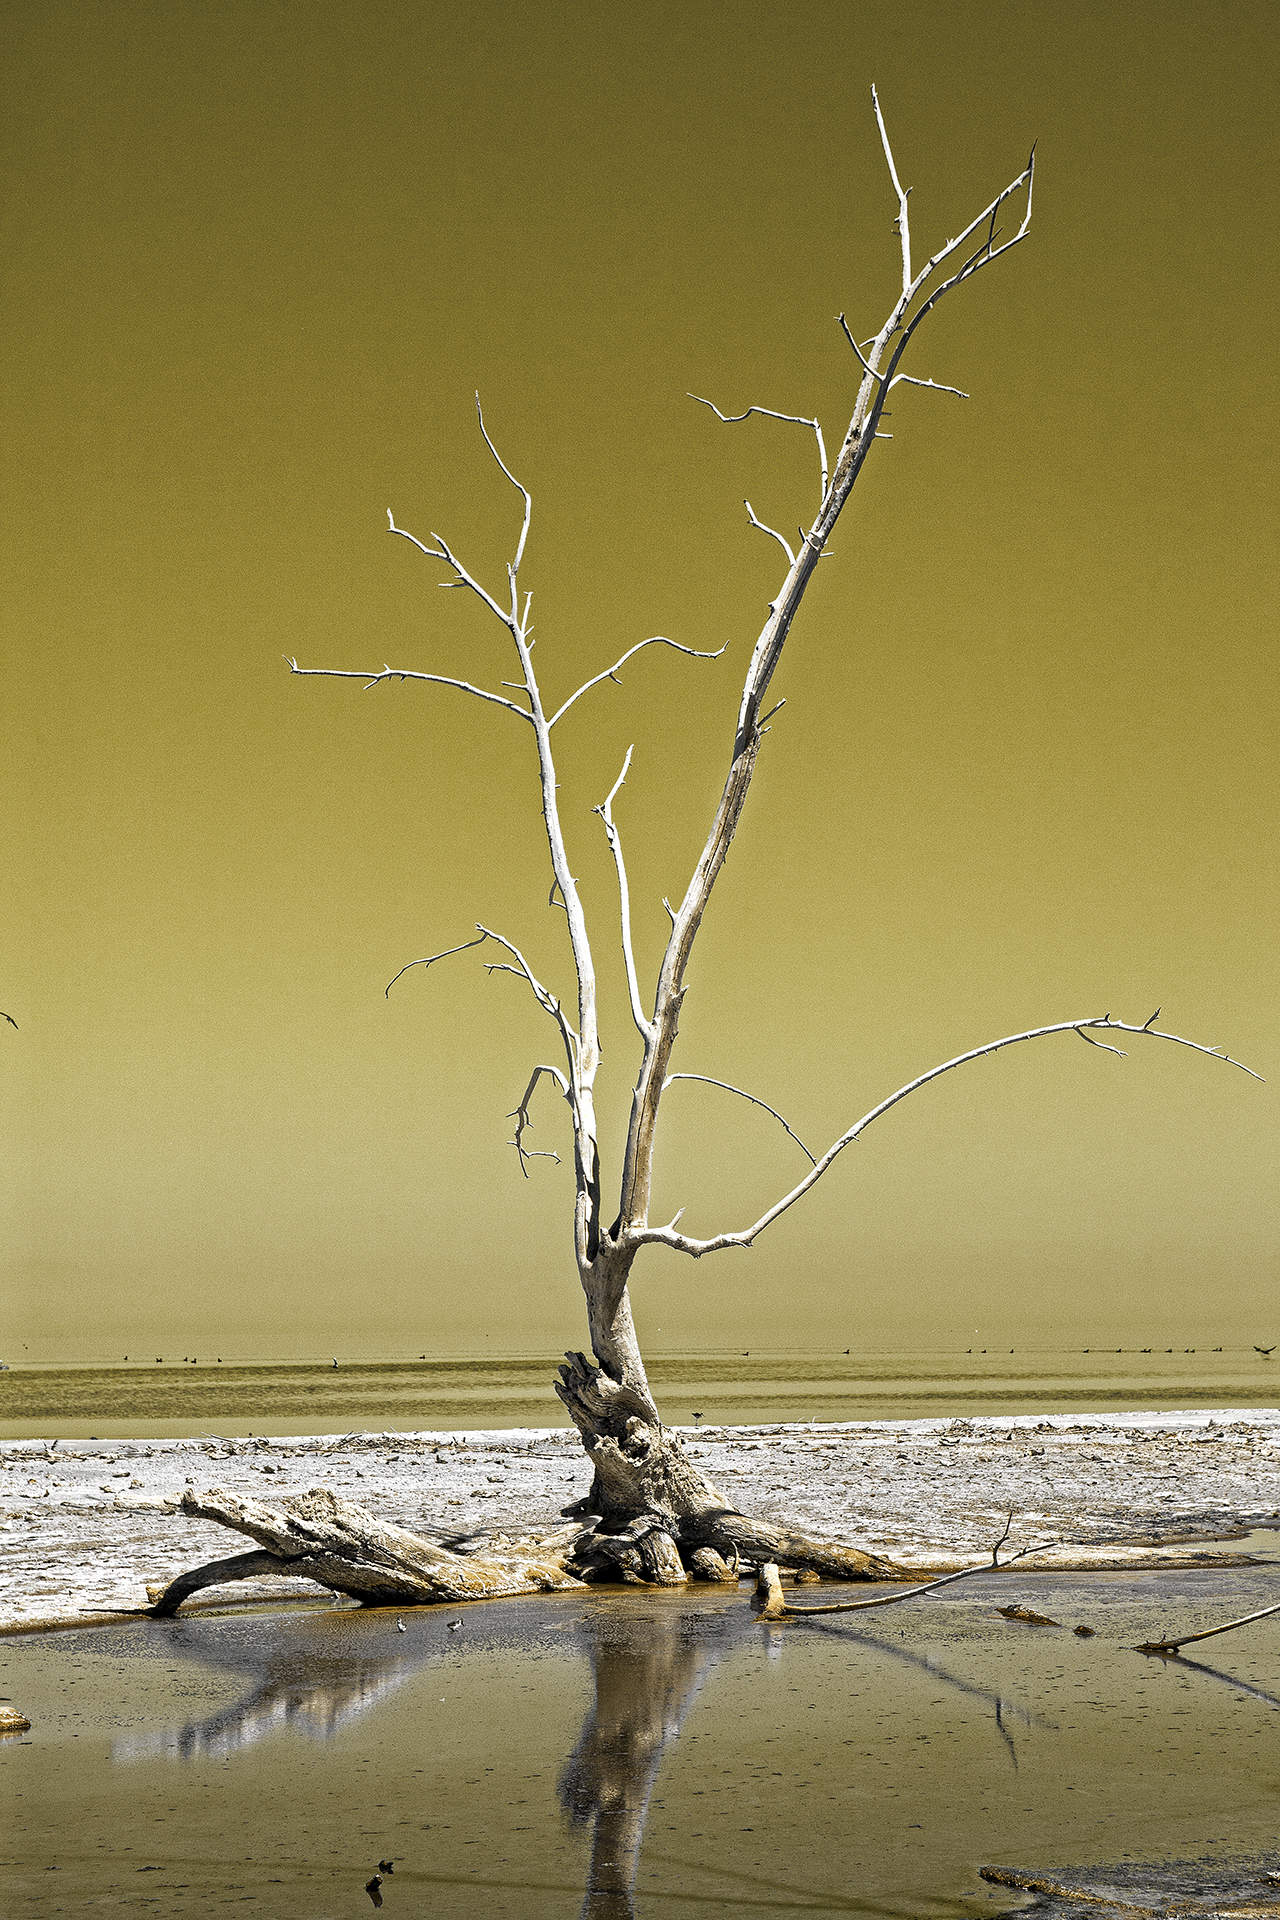 And The Dead Tree Give No Shelter